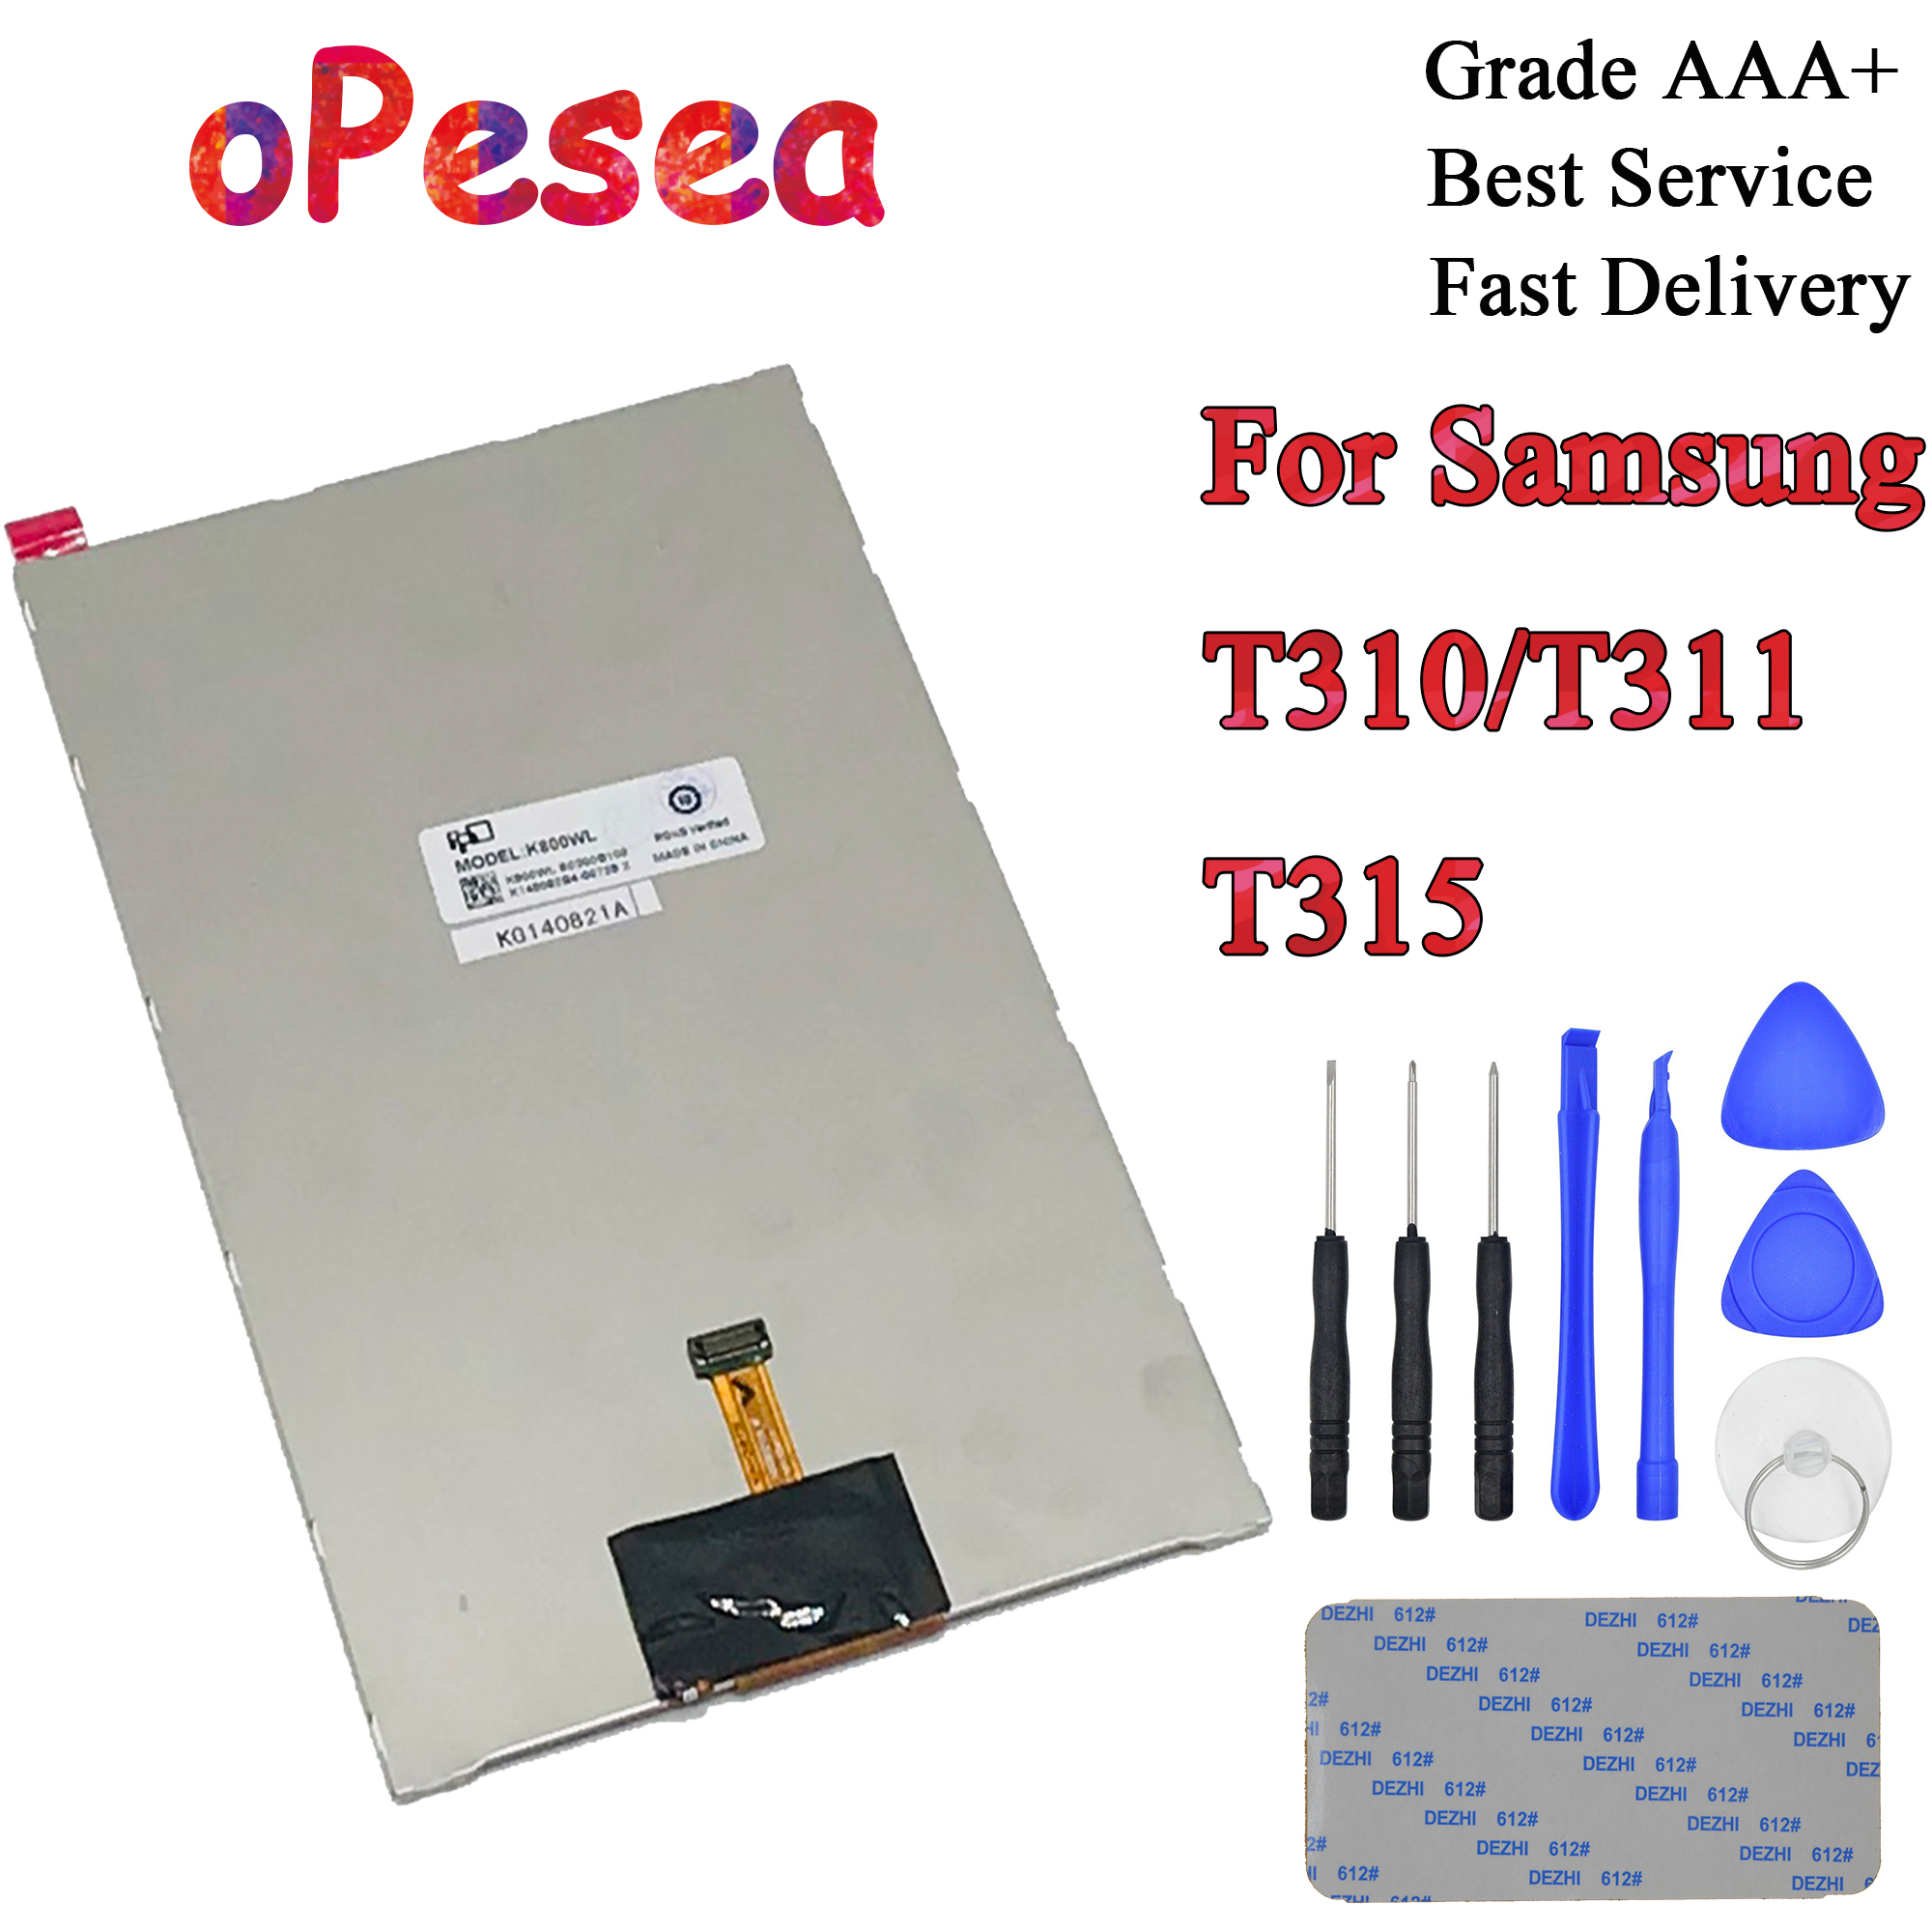 oPesea For Samsung Galaxy Tab 3 8.0 T310 <font><b>T311</b></font> T315 <font><b>SM</b></font>-T310 <font><b>SM</b></font>-<font><b>T311</b></font> <font><b>SM</b></font>-T315 <font><b>LCD</b></font> Display Panel Screen Monitor Replacement Parts image